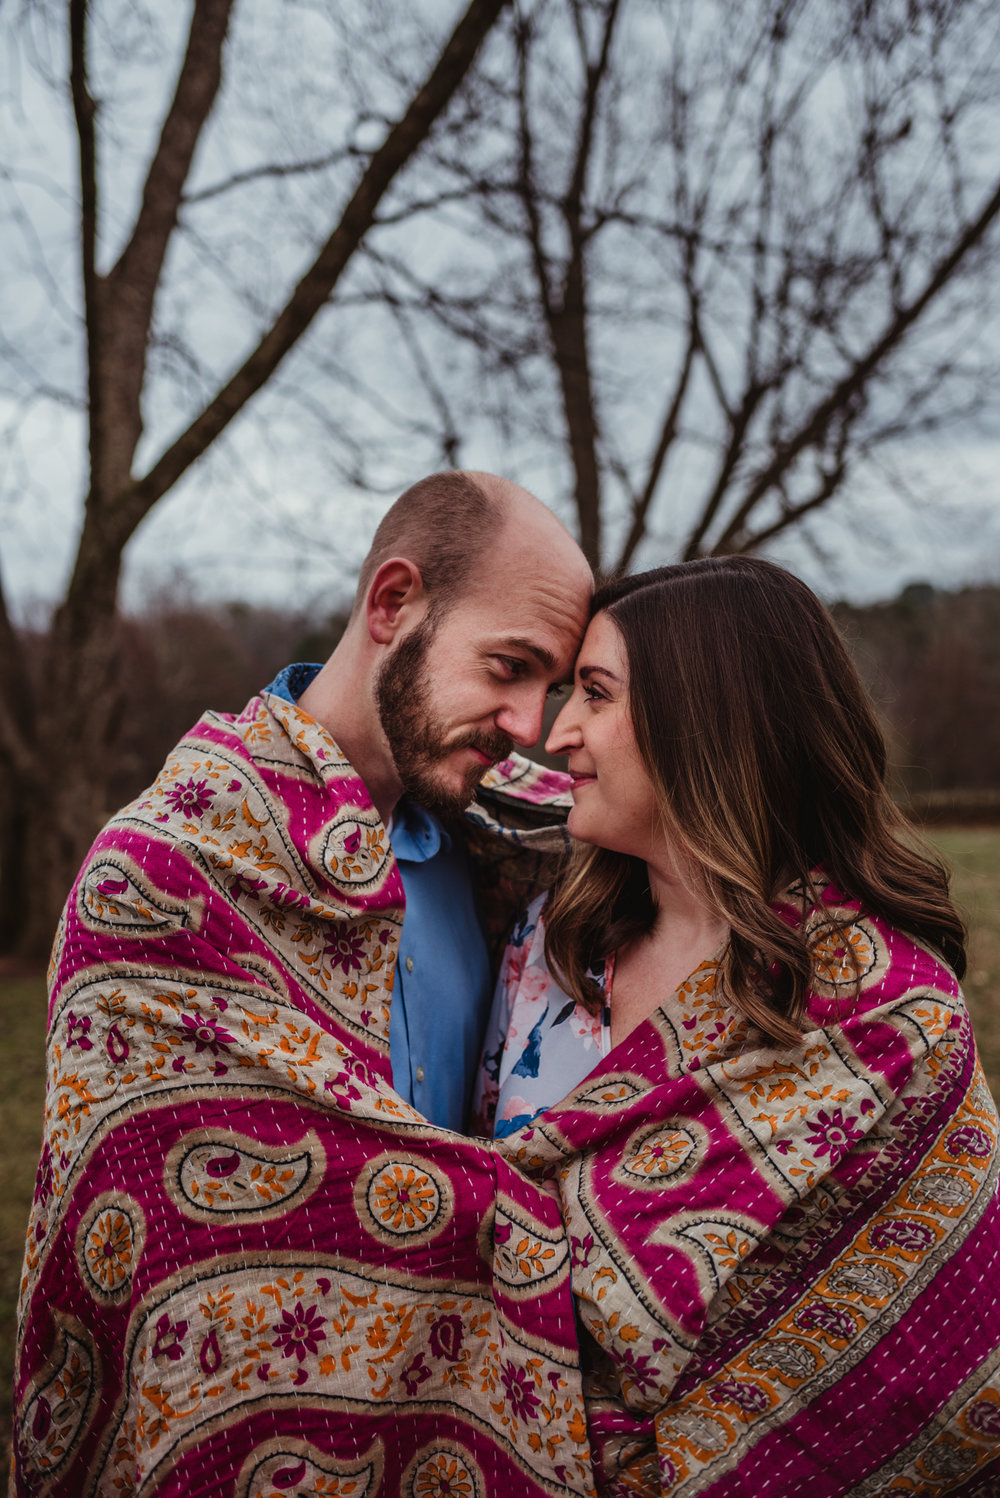 The parents to be snuggle together under a pink blanket, picture taken by Rose Trail Images at Joyner Park in Wake Forest, NC.